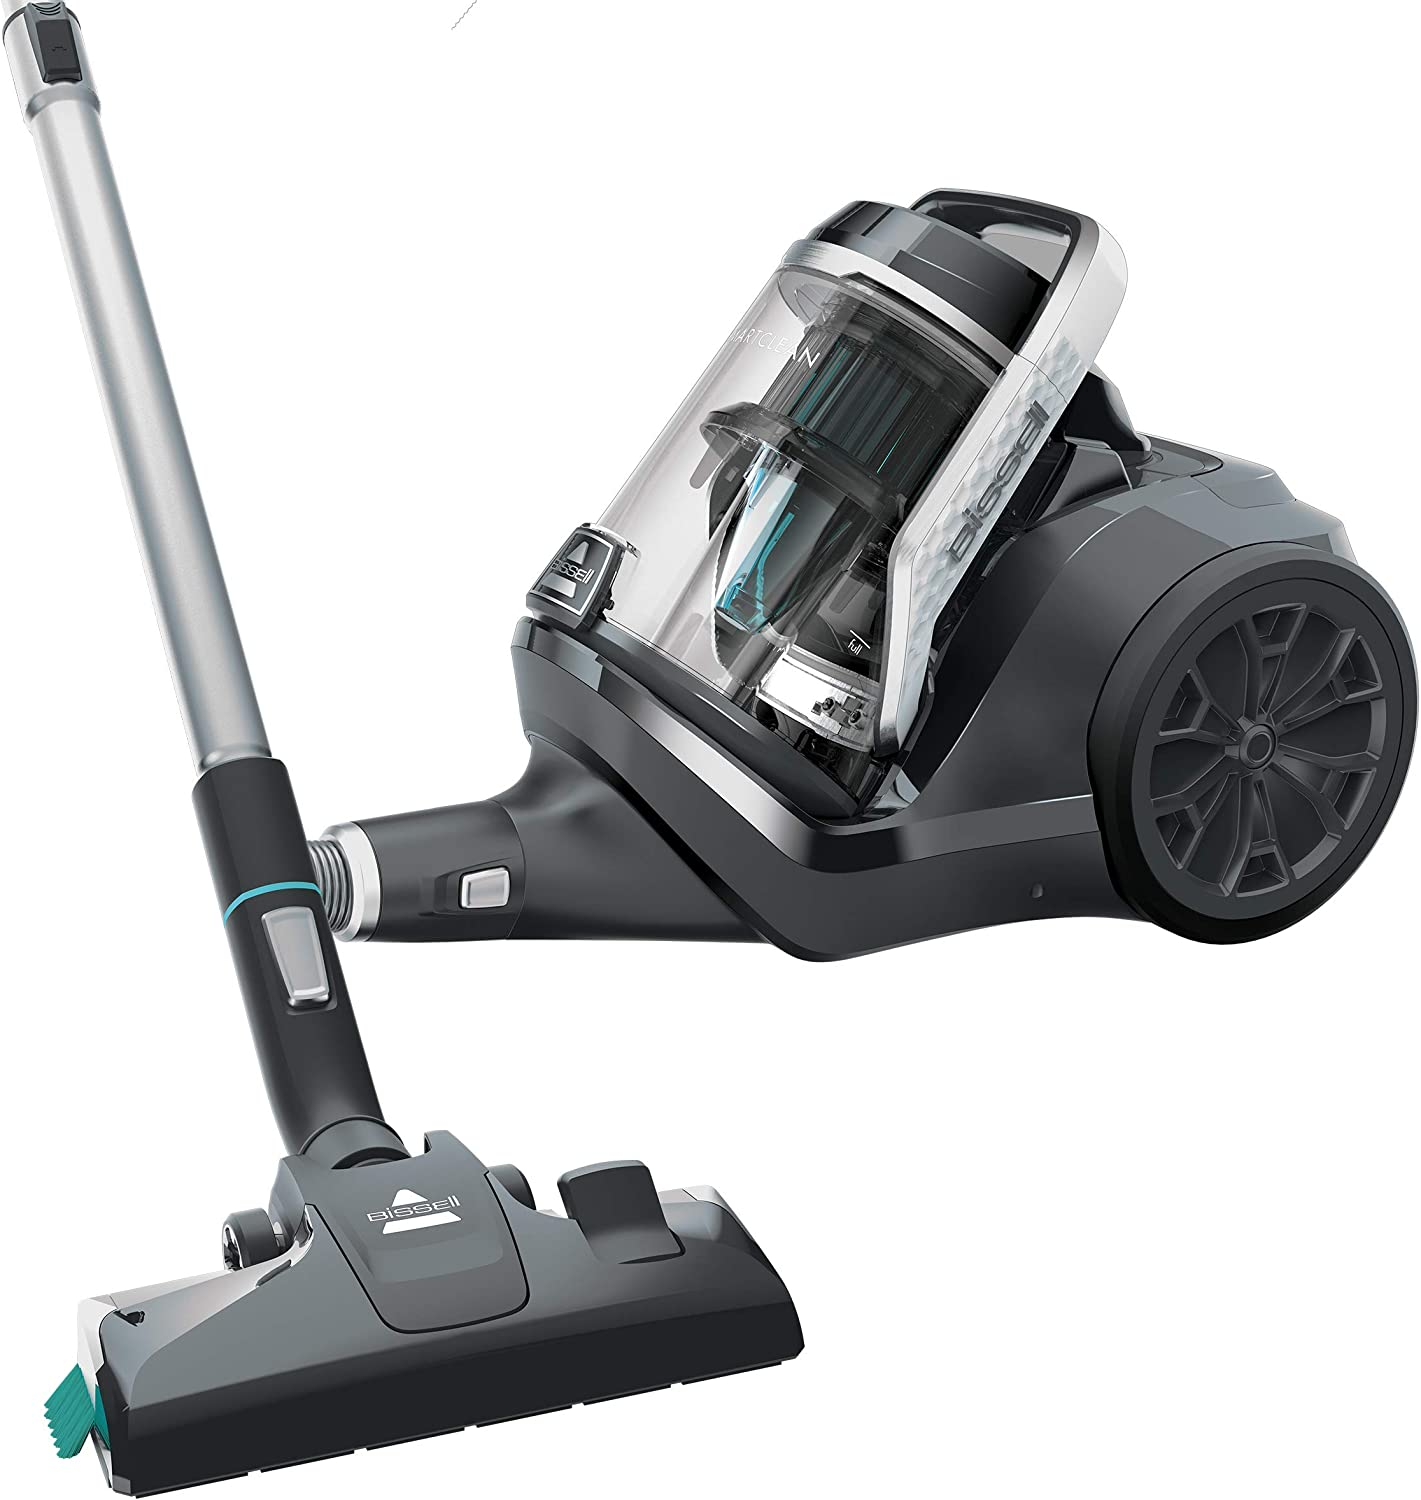 BISSELL, 2268 SmartClean Canister Vacuum Cleaner